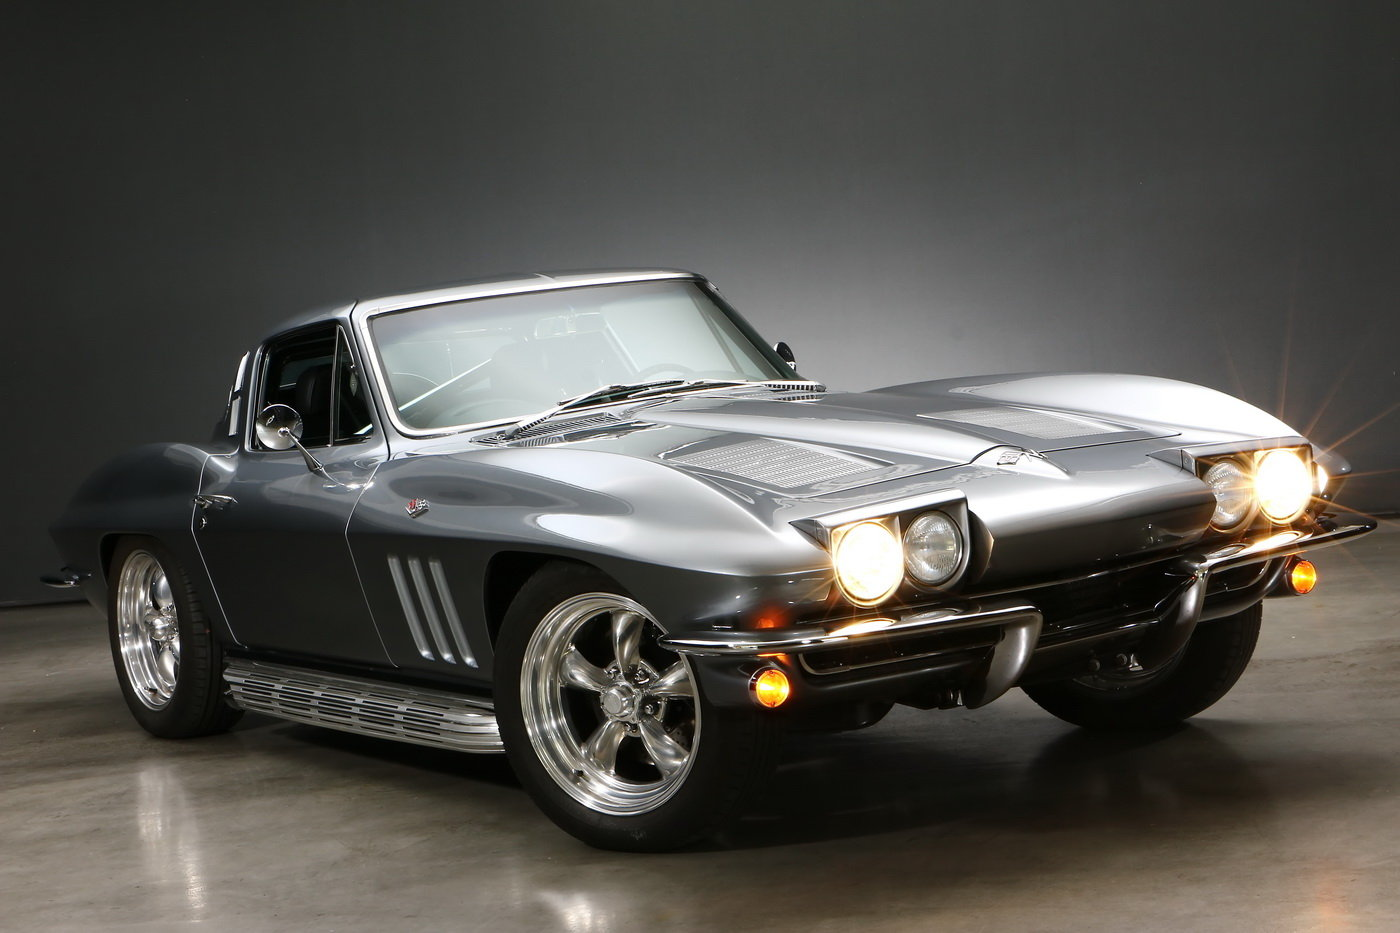 1966 Chevroltet Corvette Sting Ray C2 Coupé For Sale (picture 1 of 6)